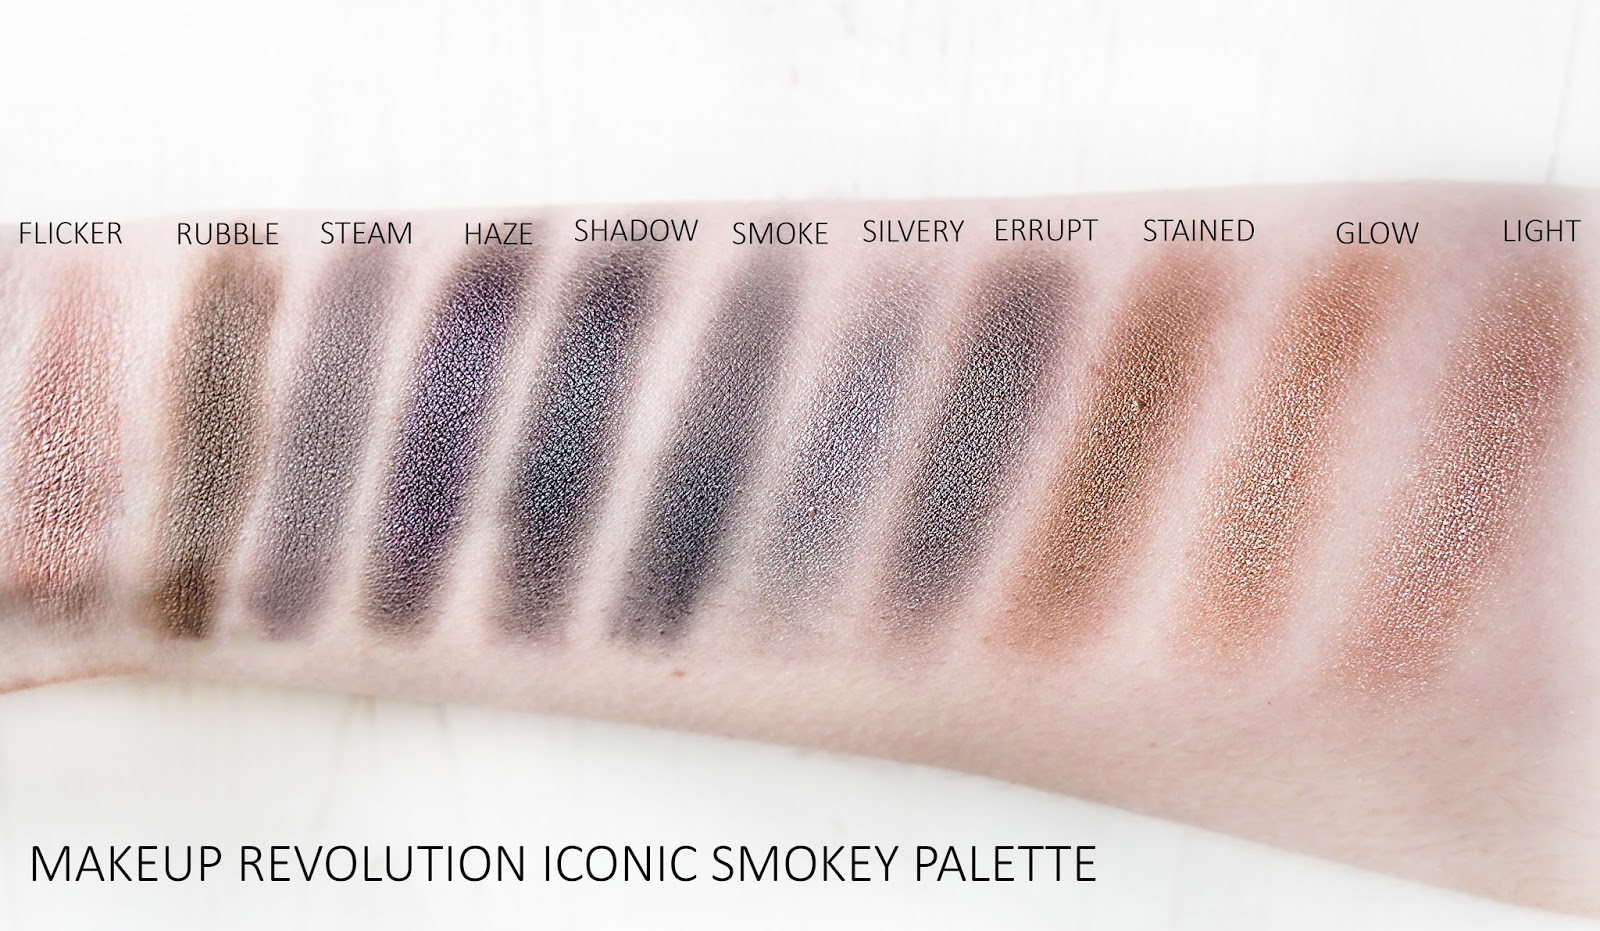 Makeup Revolution Iconic Smokey Palette Swatches